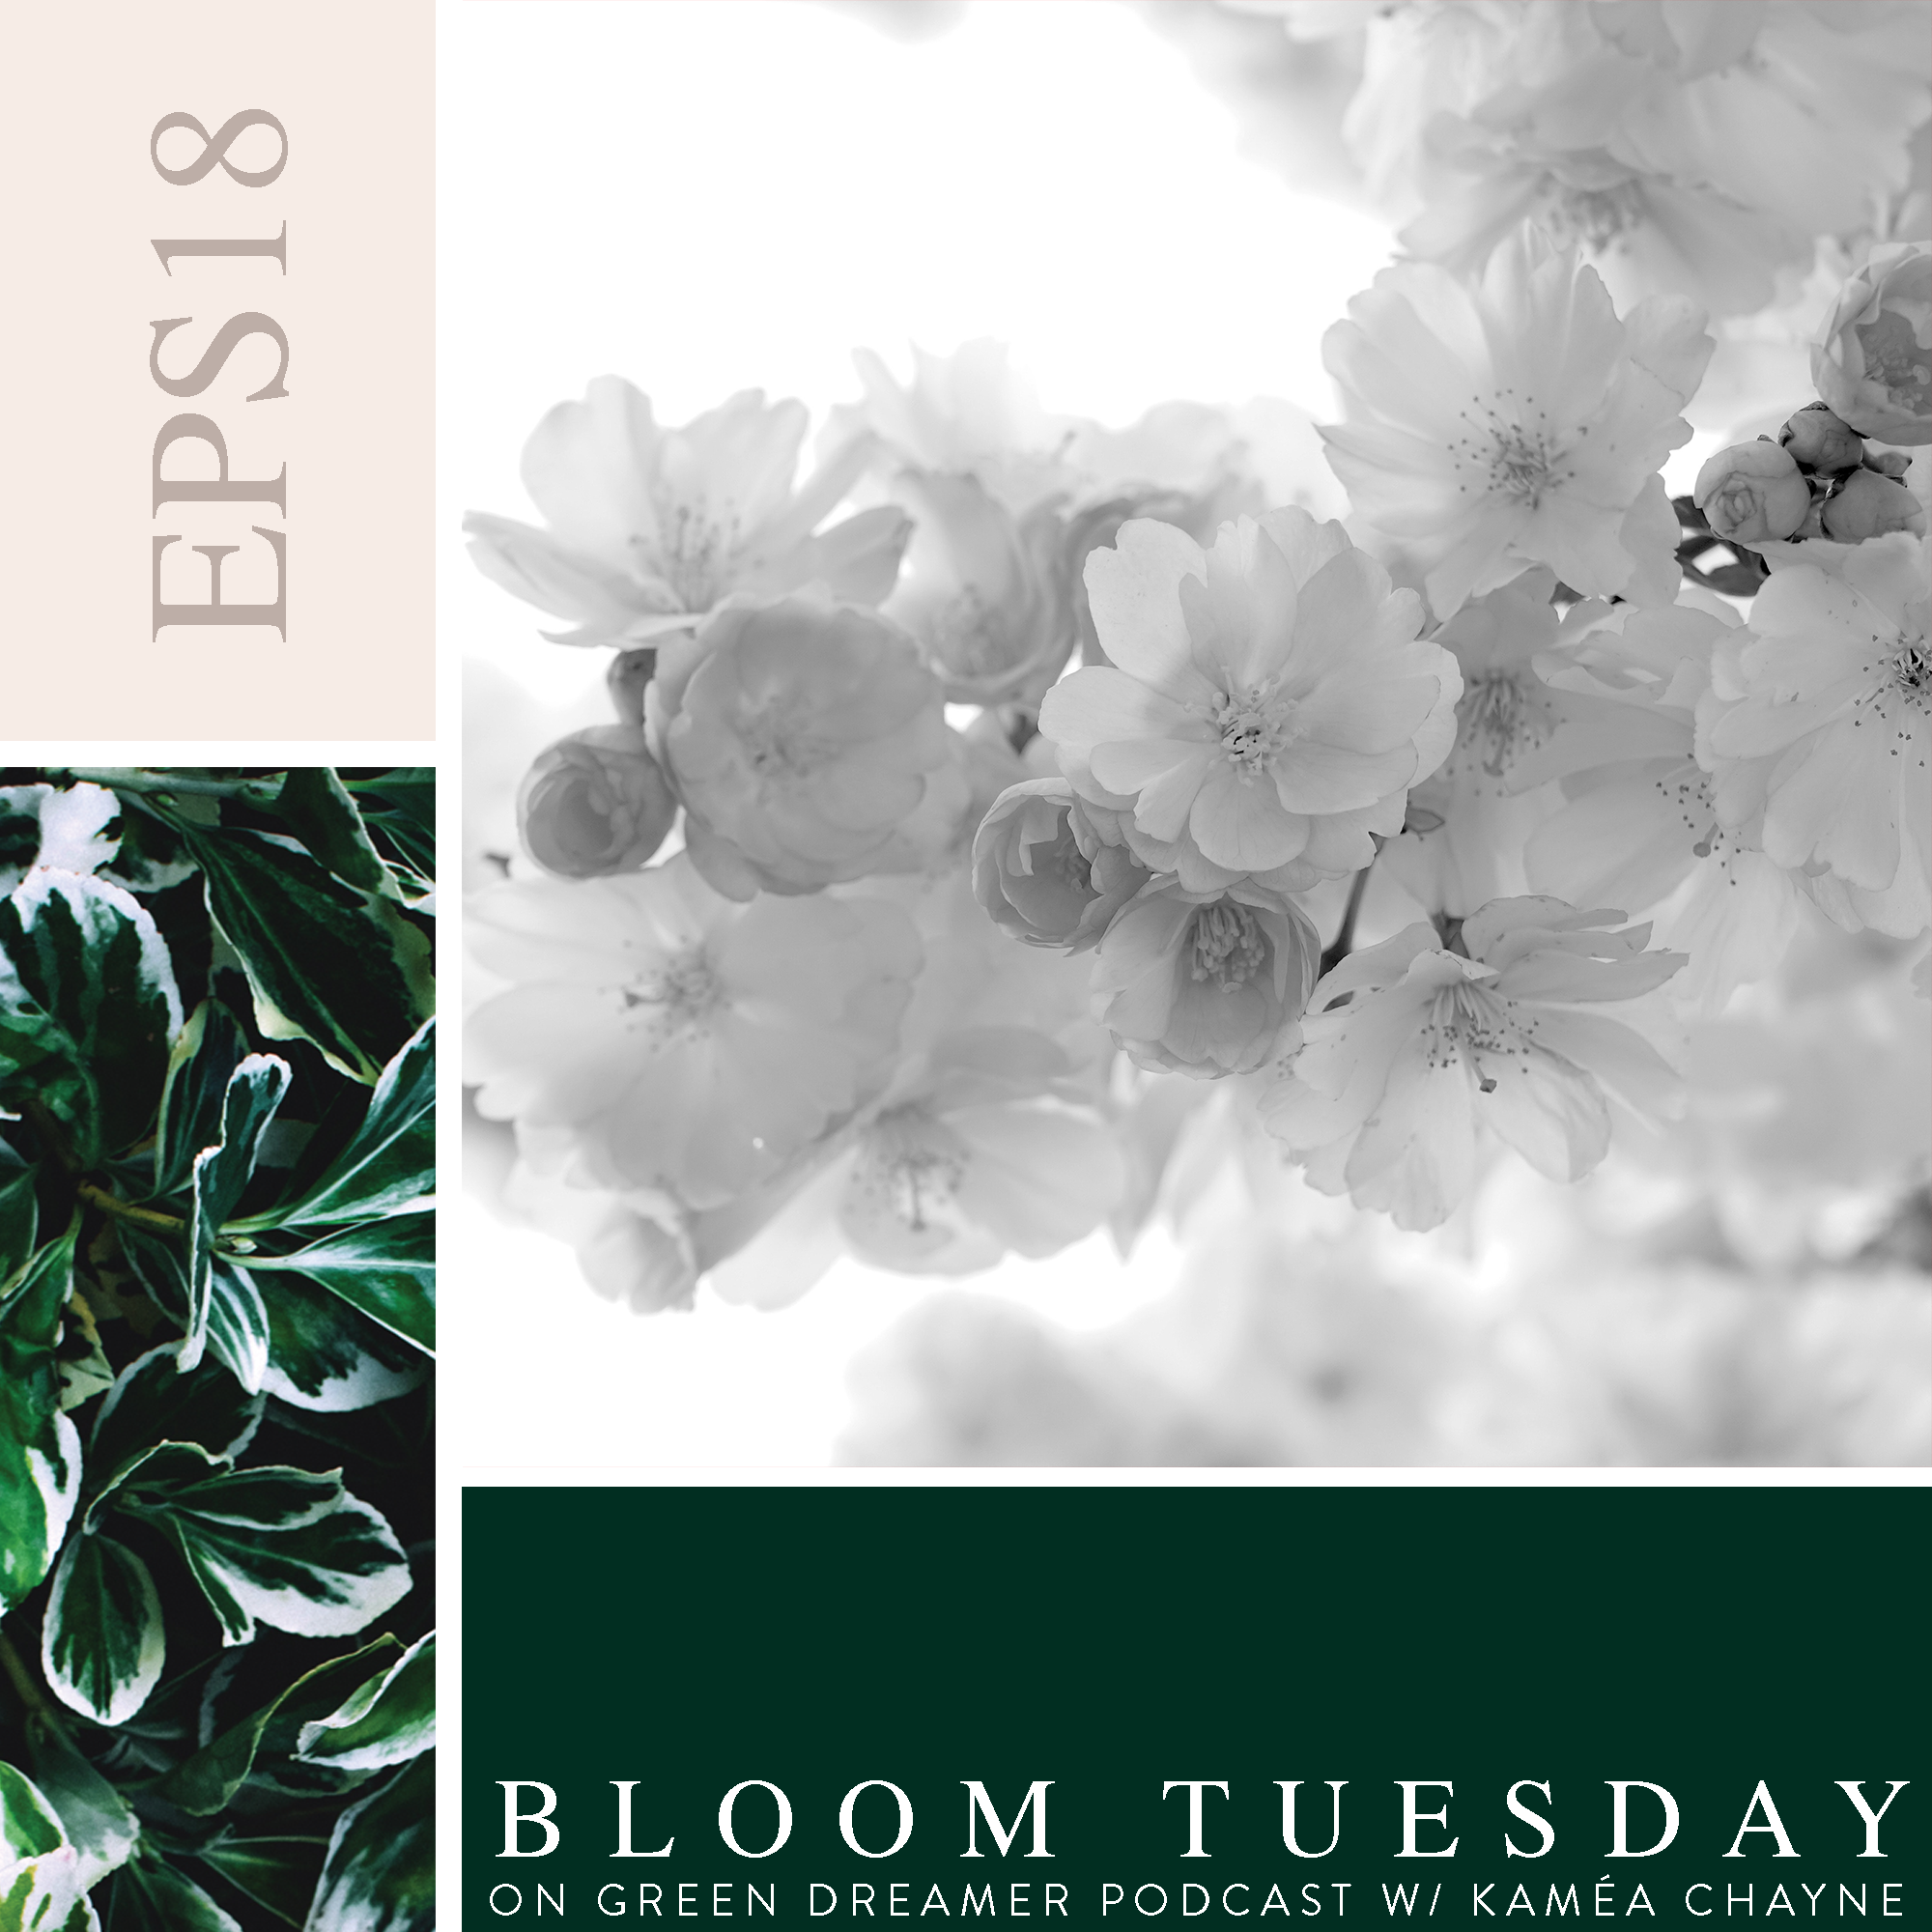 18) BLOOM TUESDAY